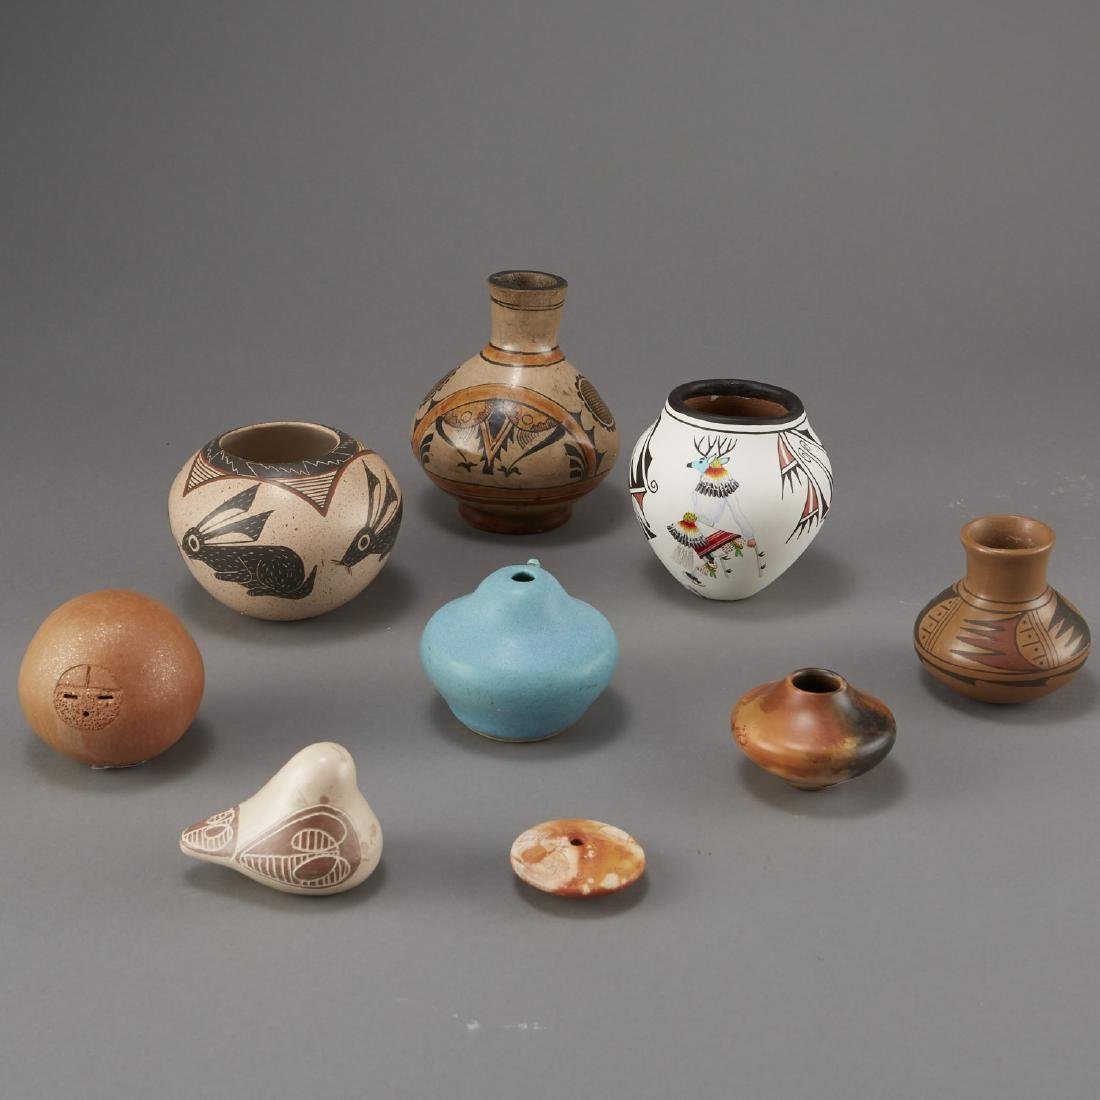 9 Pottery Pieces Pahponee, Lujan-Hauer, Mateos - 3